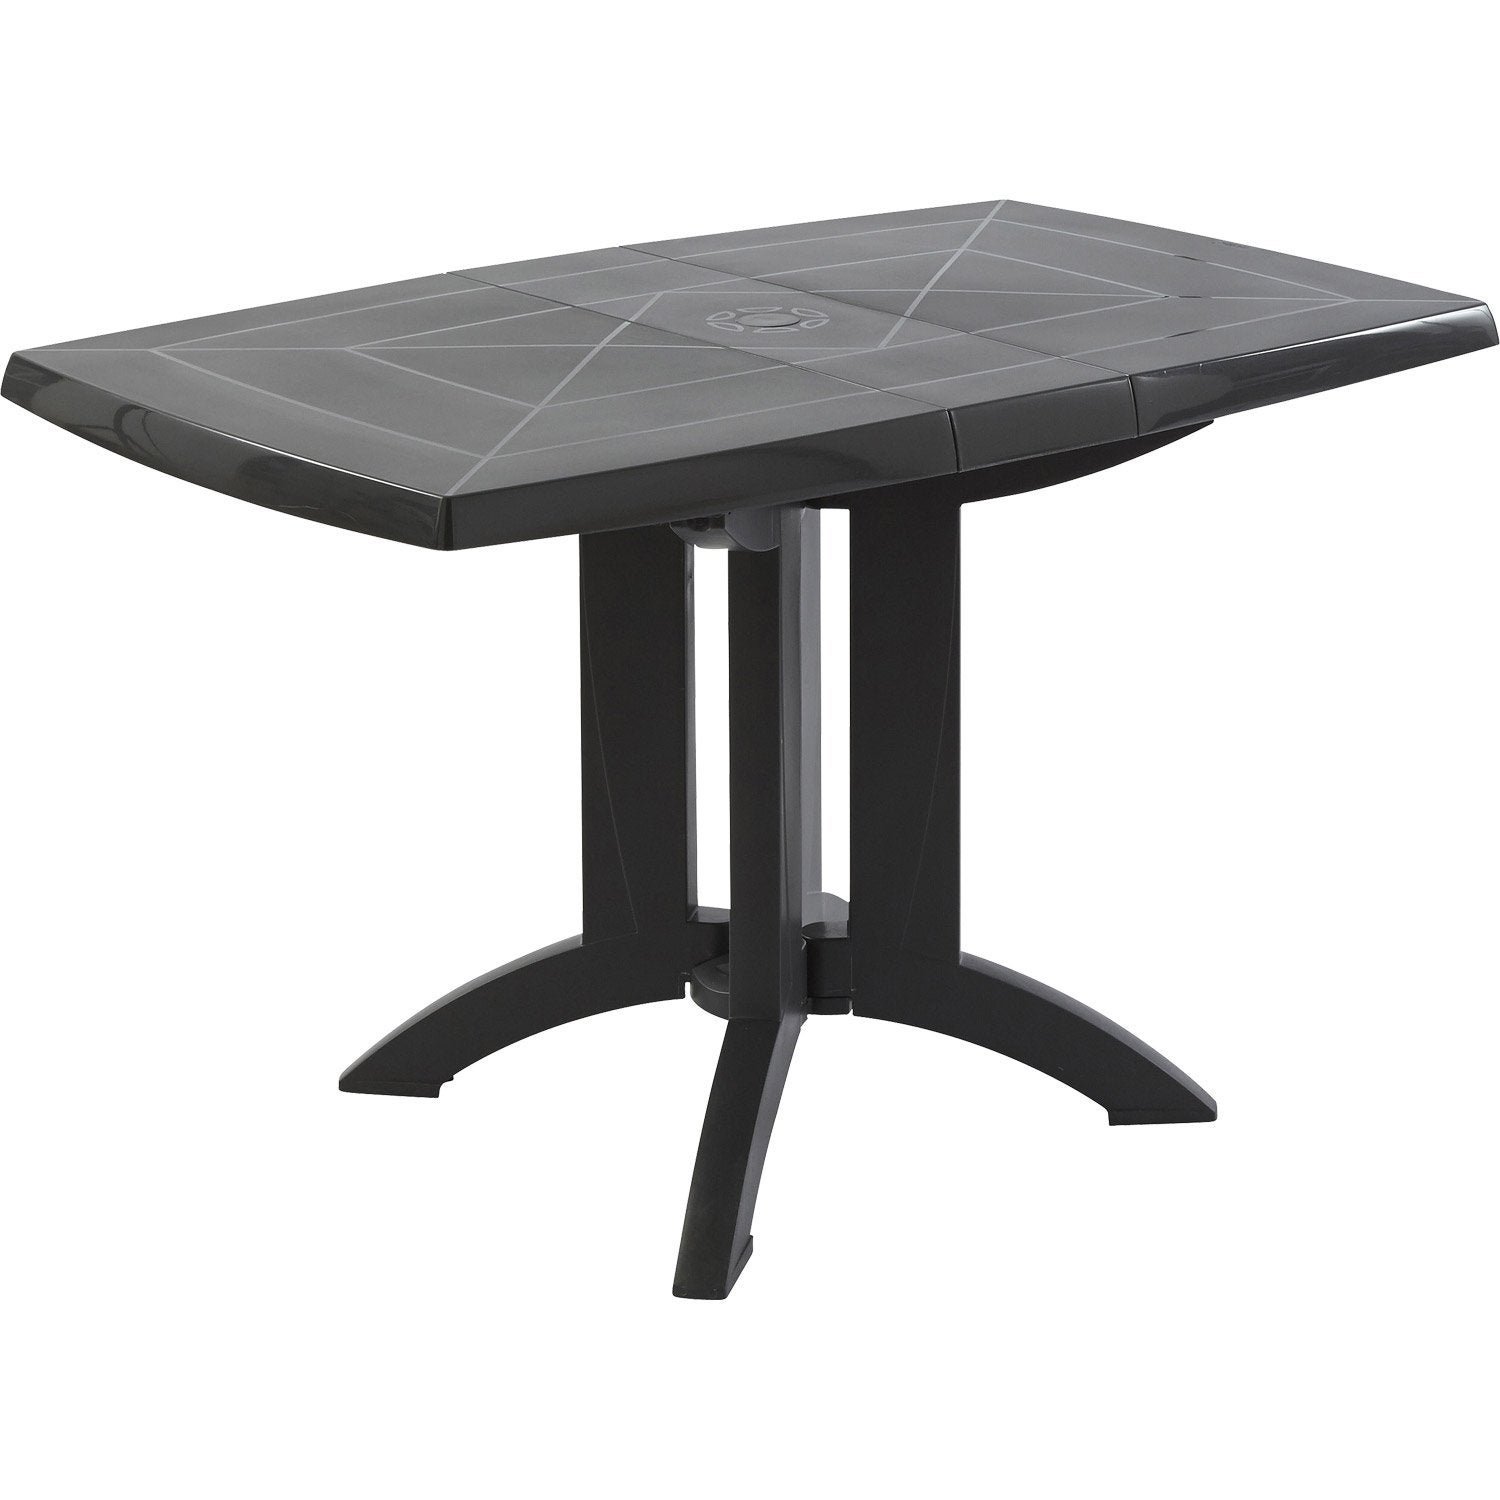 Table De Jardin Grosfillex V Ga Rectangulaire Anthracite 4 Personnes Leroy Merlin